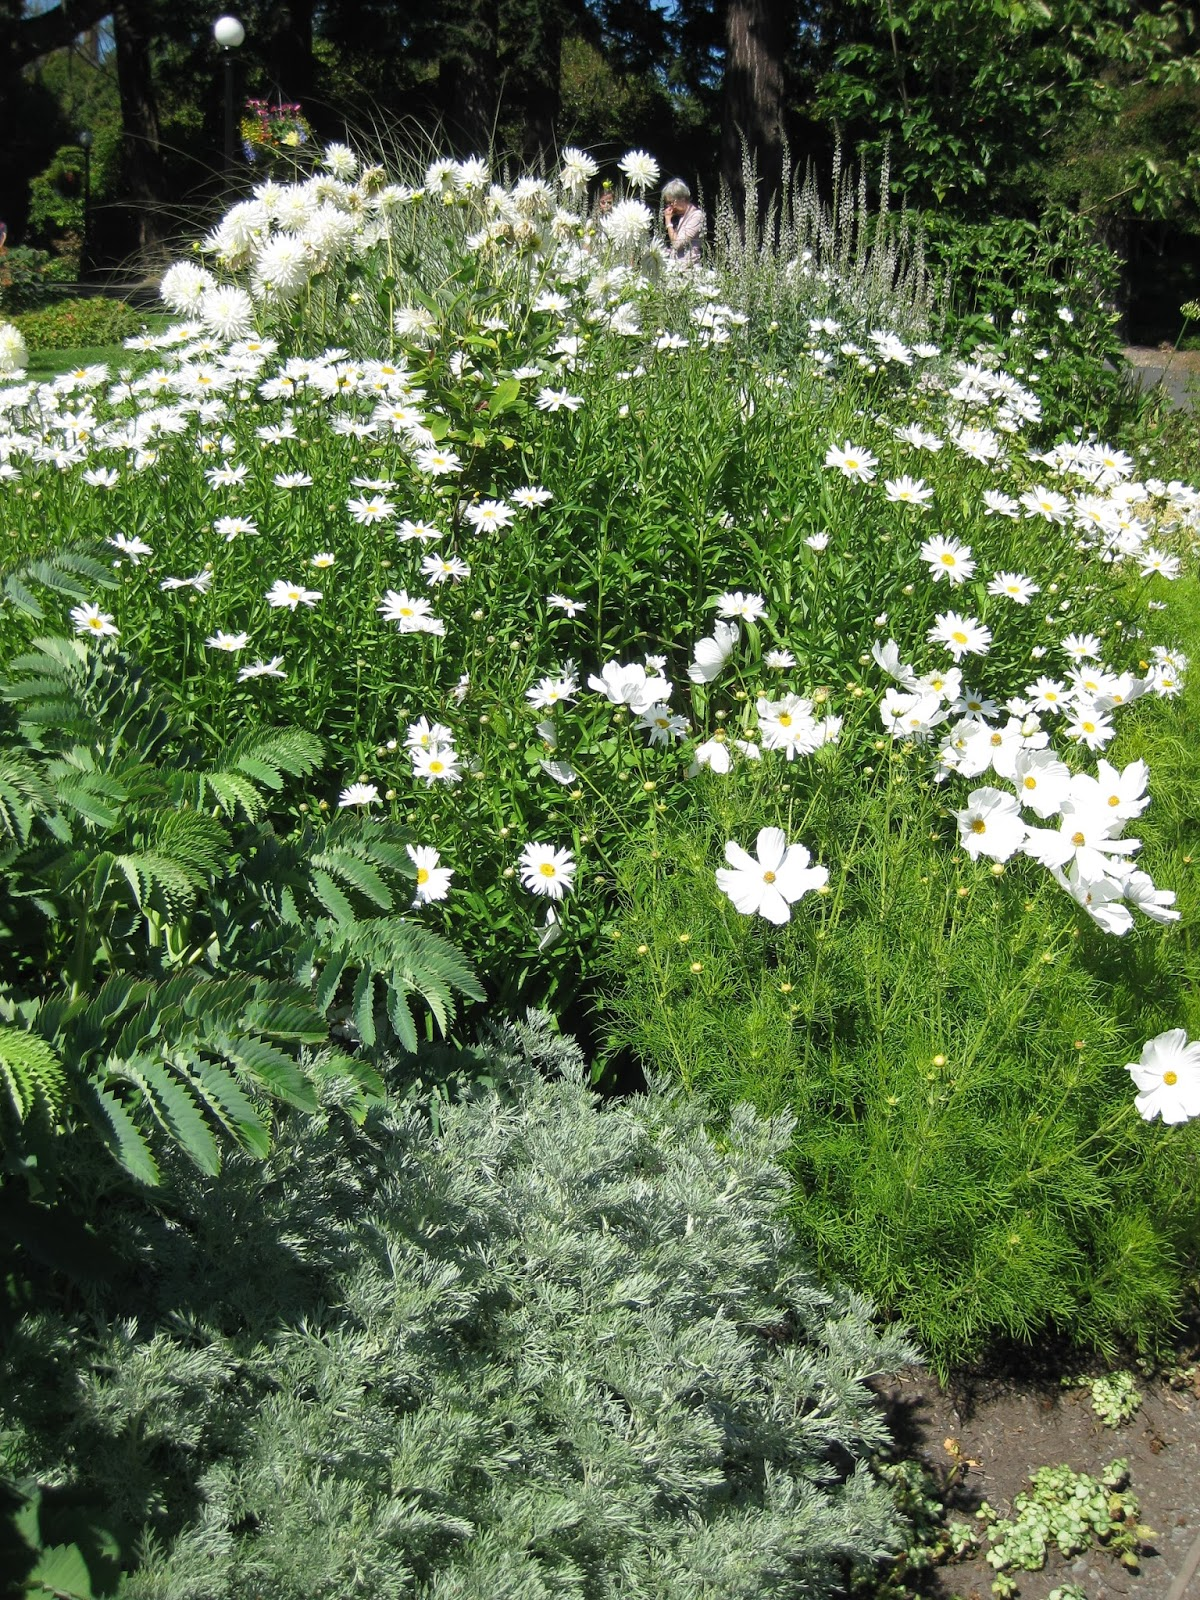 I Also Scoured More Seed Catalogs, Worked On Plant Records And Am  Finalizing My Presentations For The WPT Garden Expo (The Moonlit Garden, The  Vertical ...